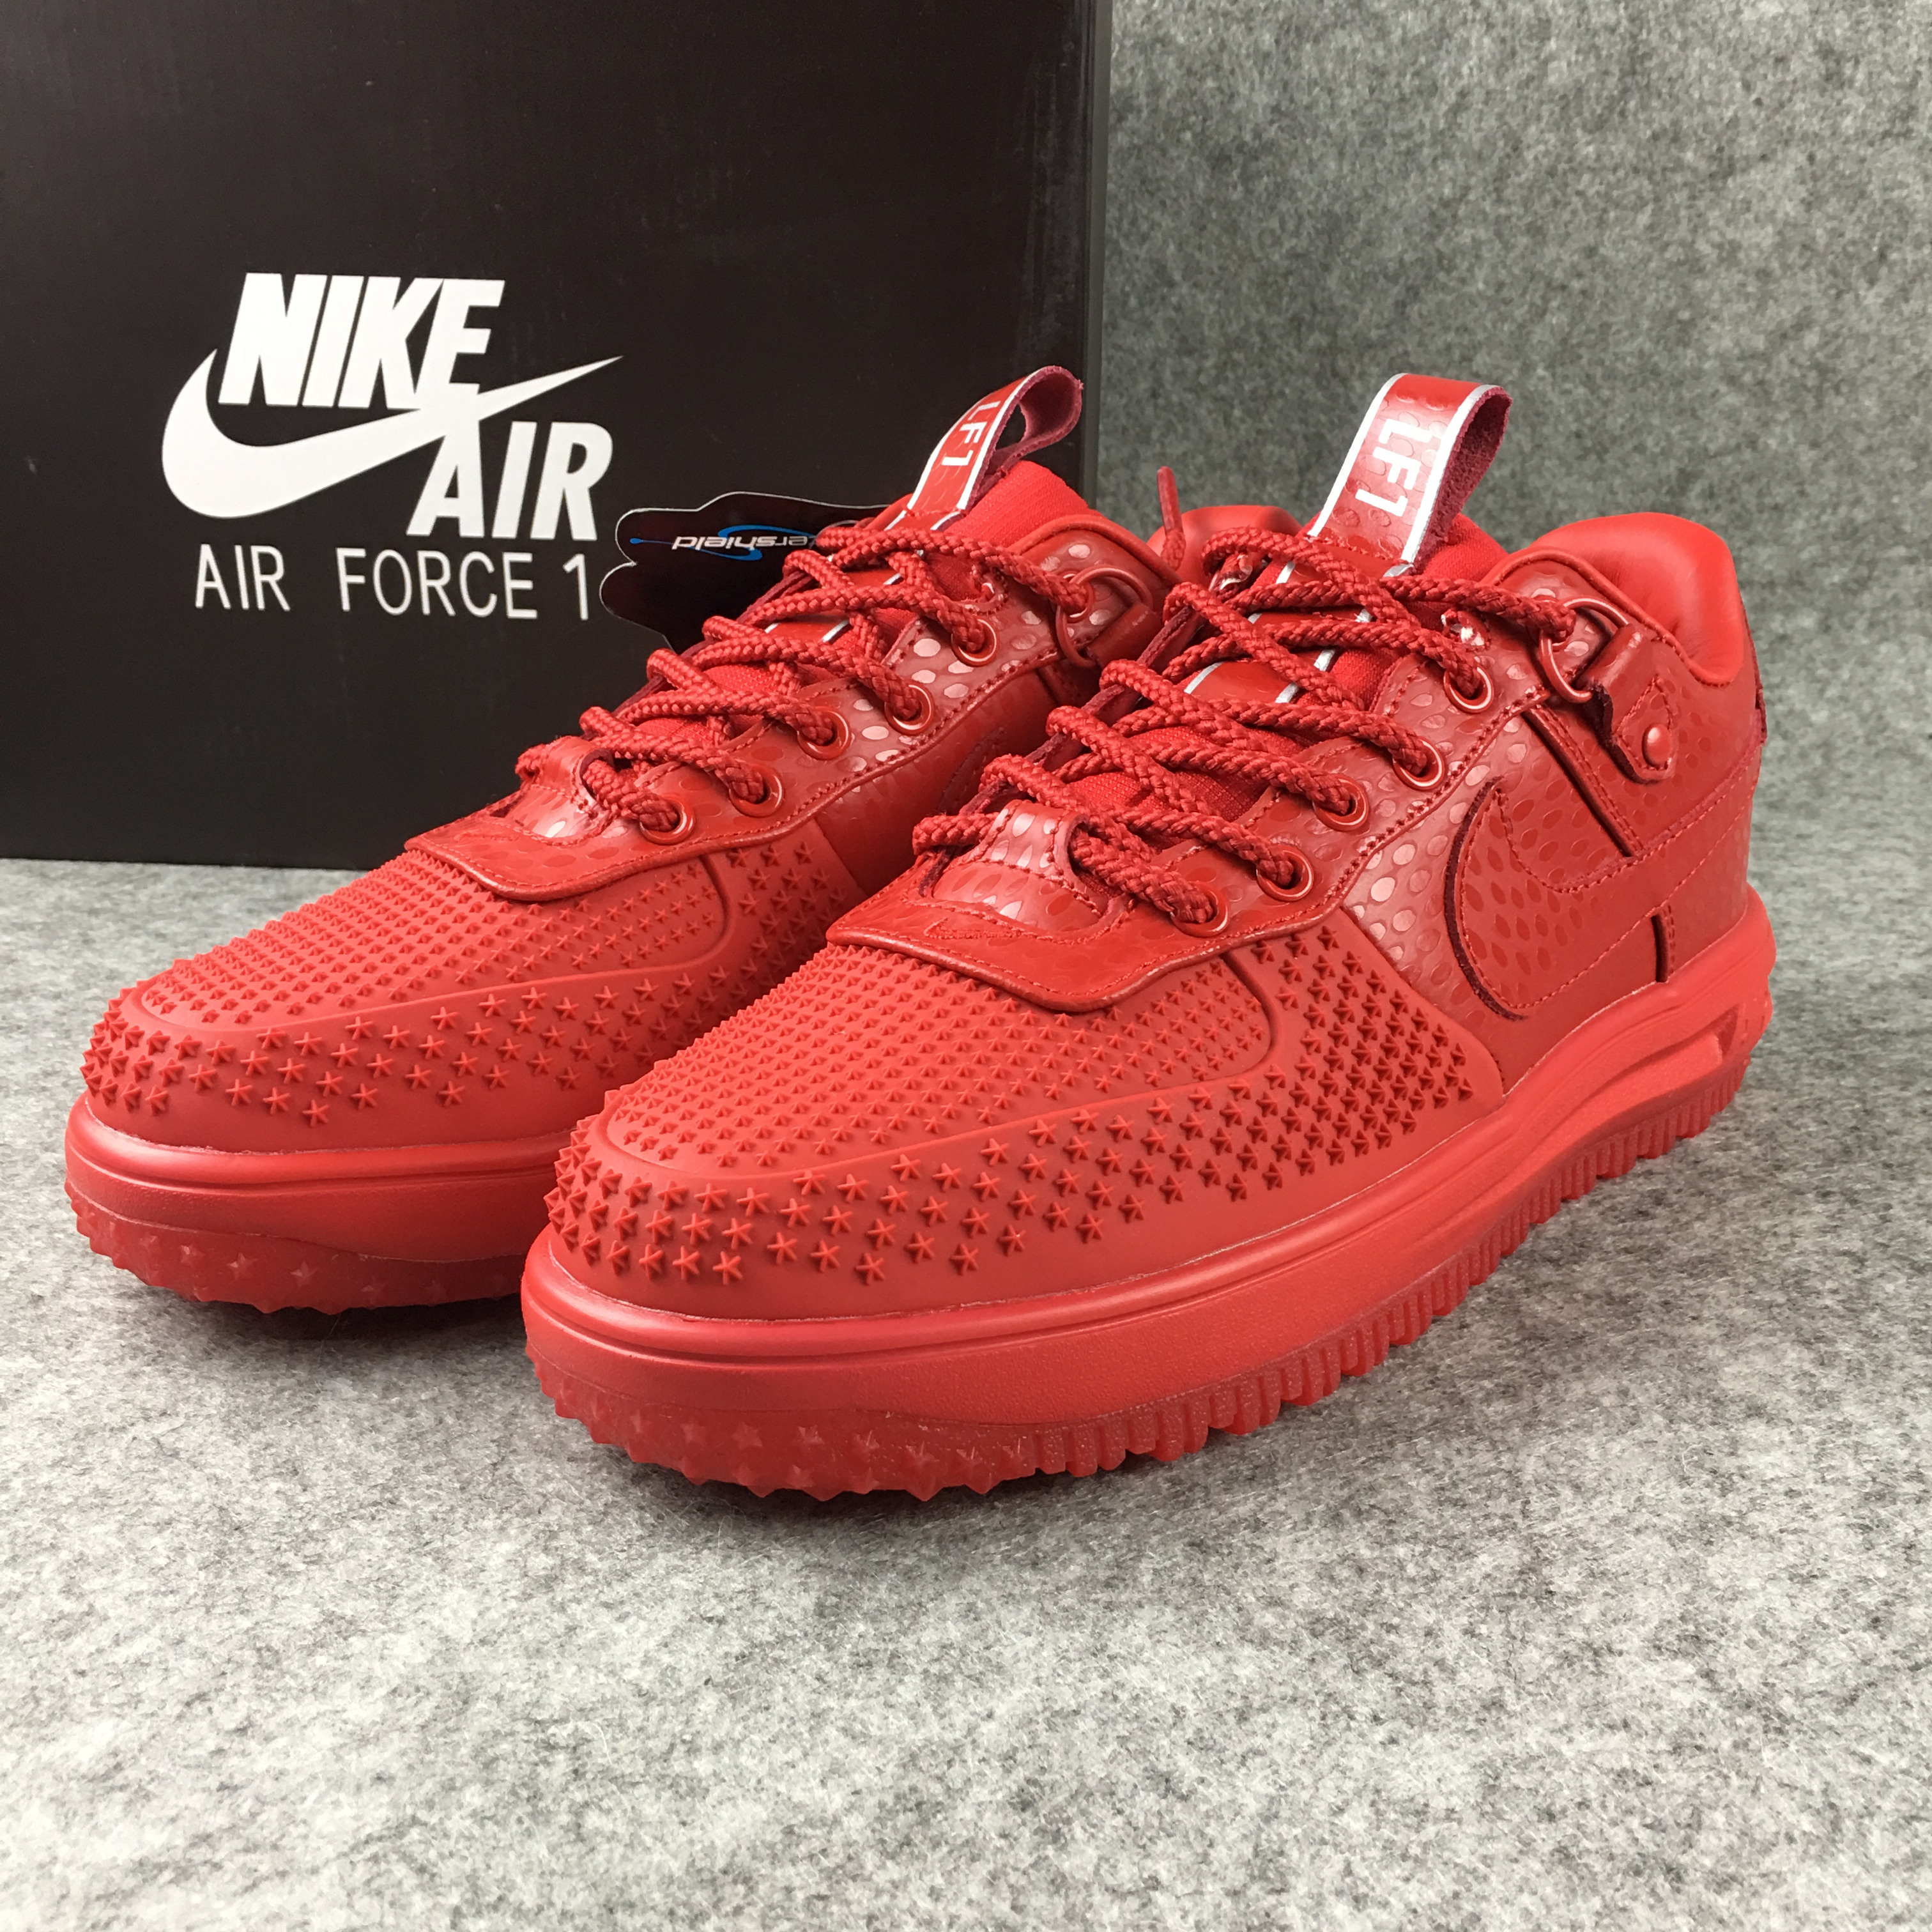 New Nike Lunar Force 1 Low All Red